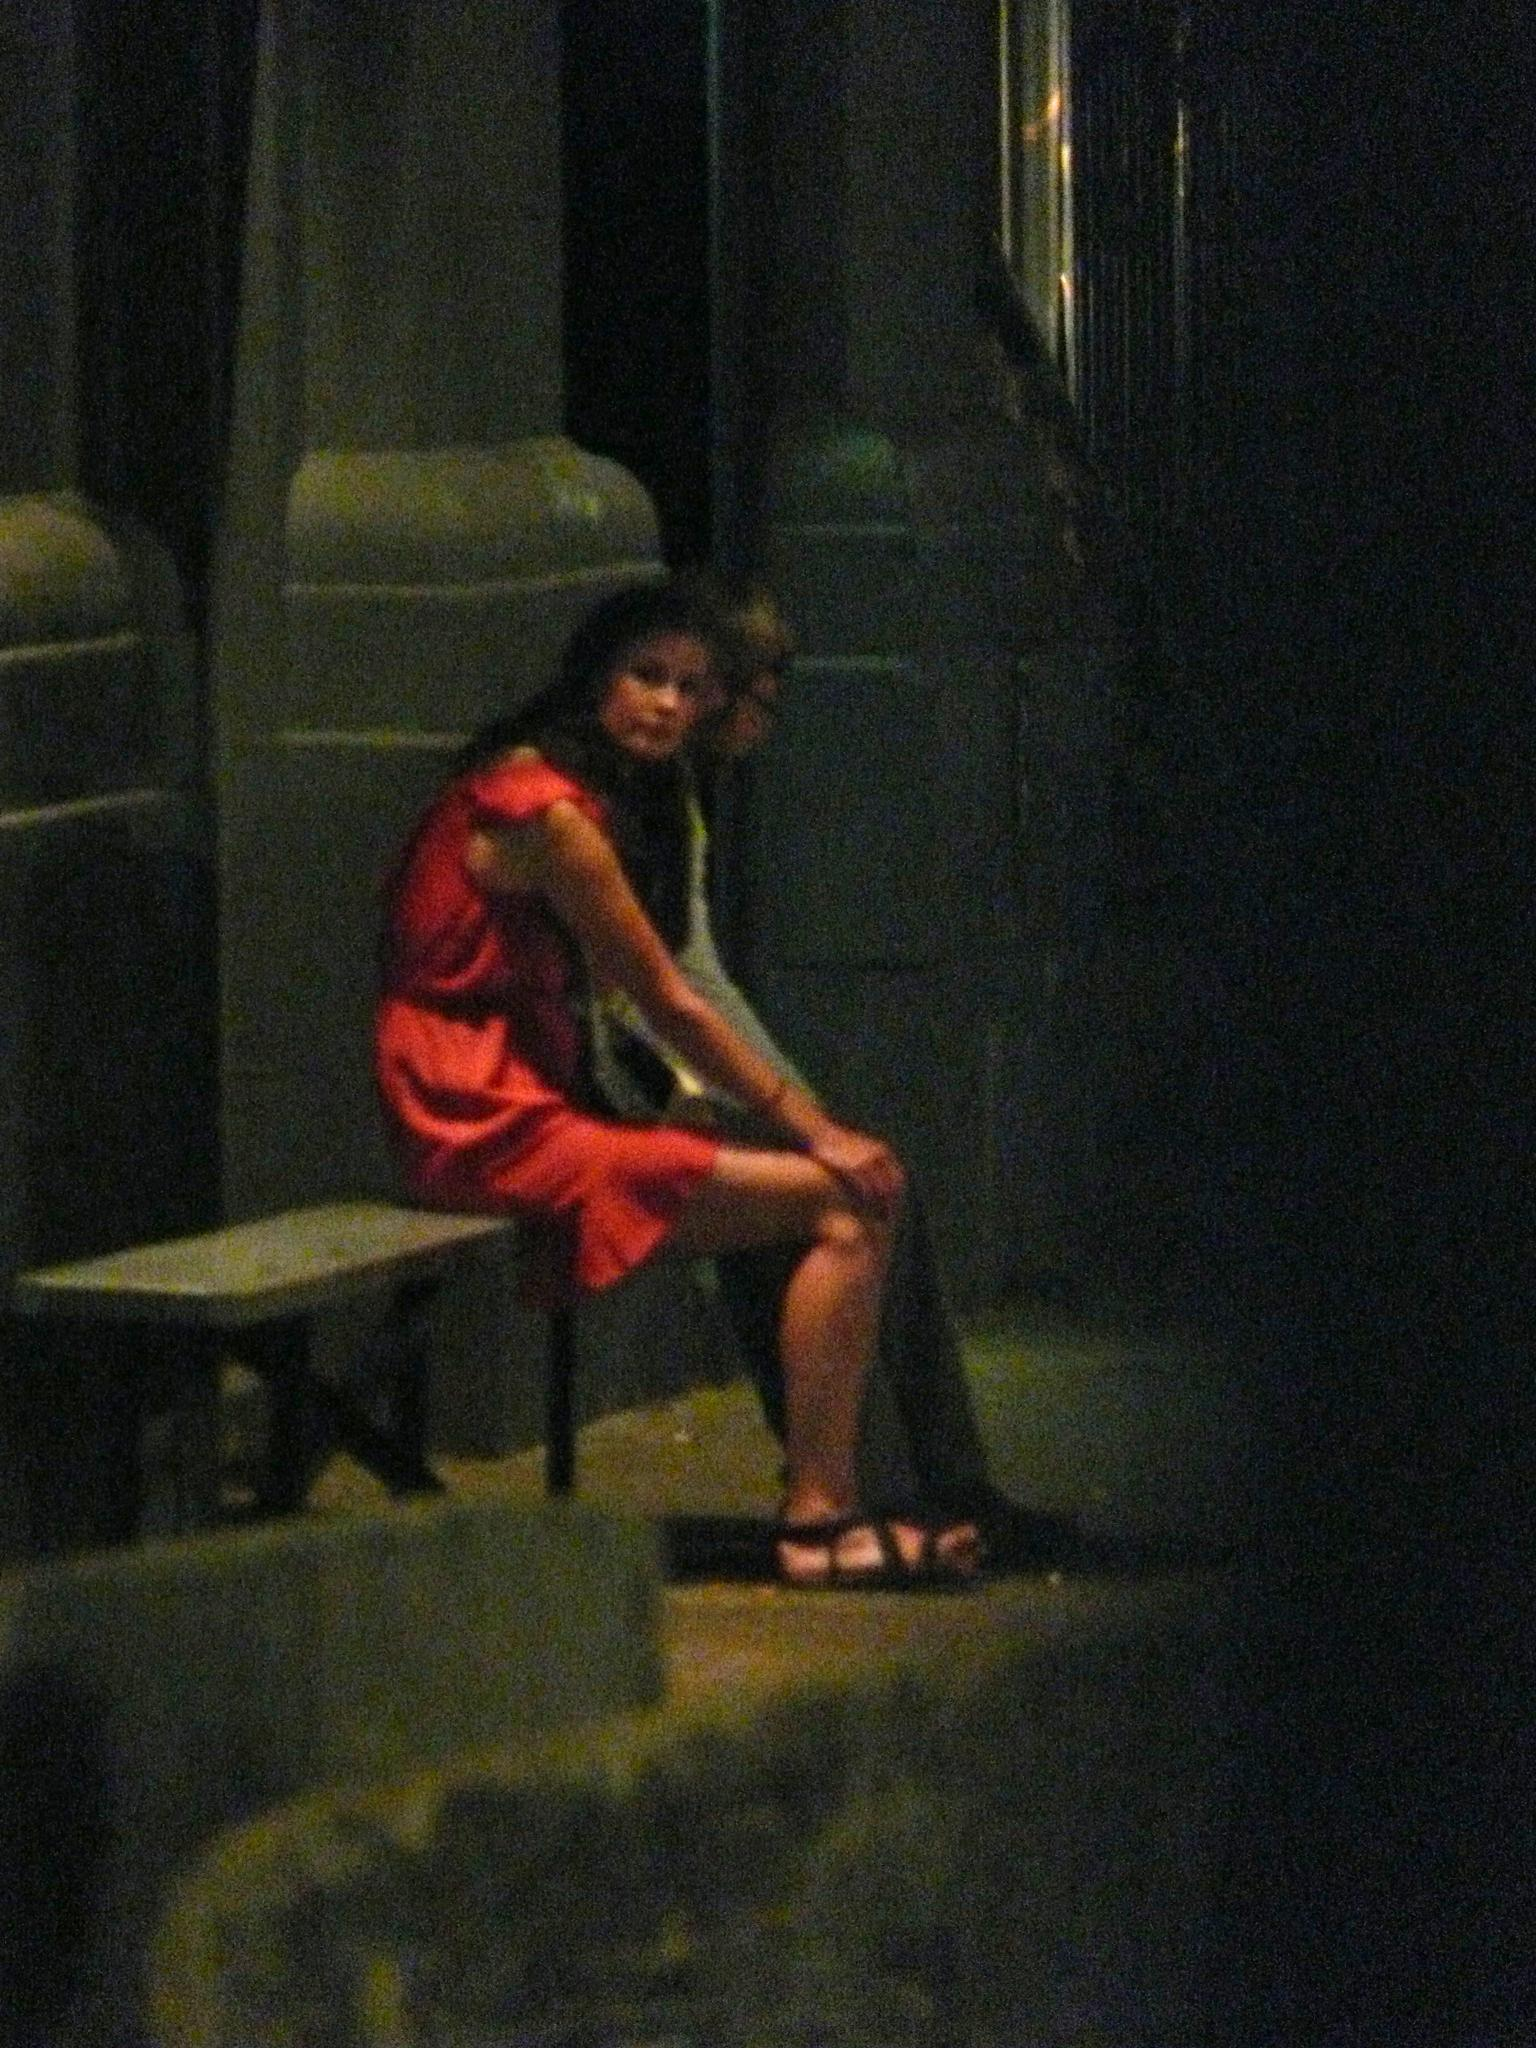 Girl in Red Dress. by jim.shaw.1238